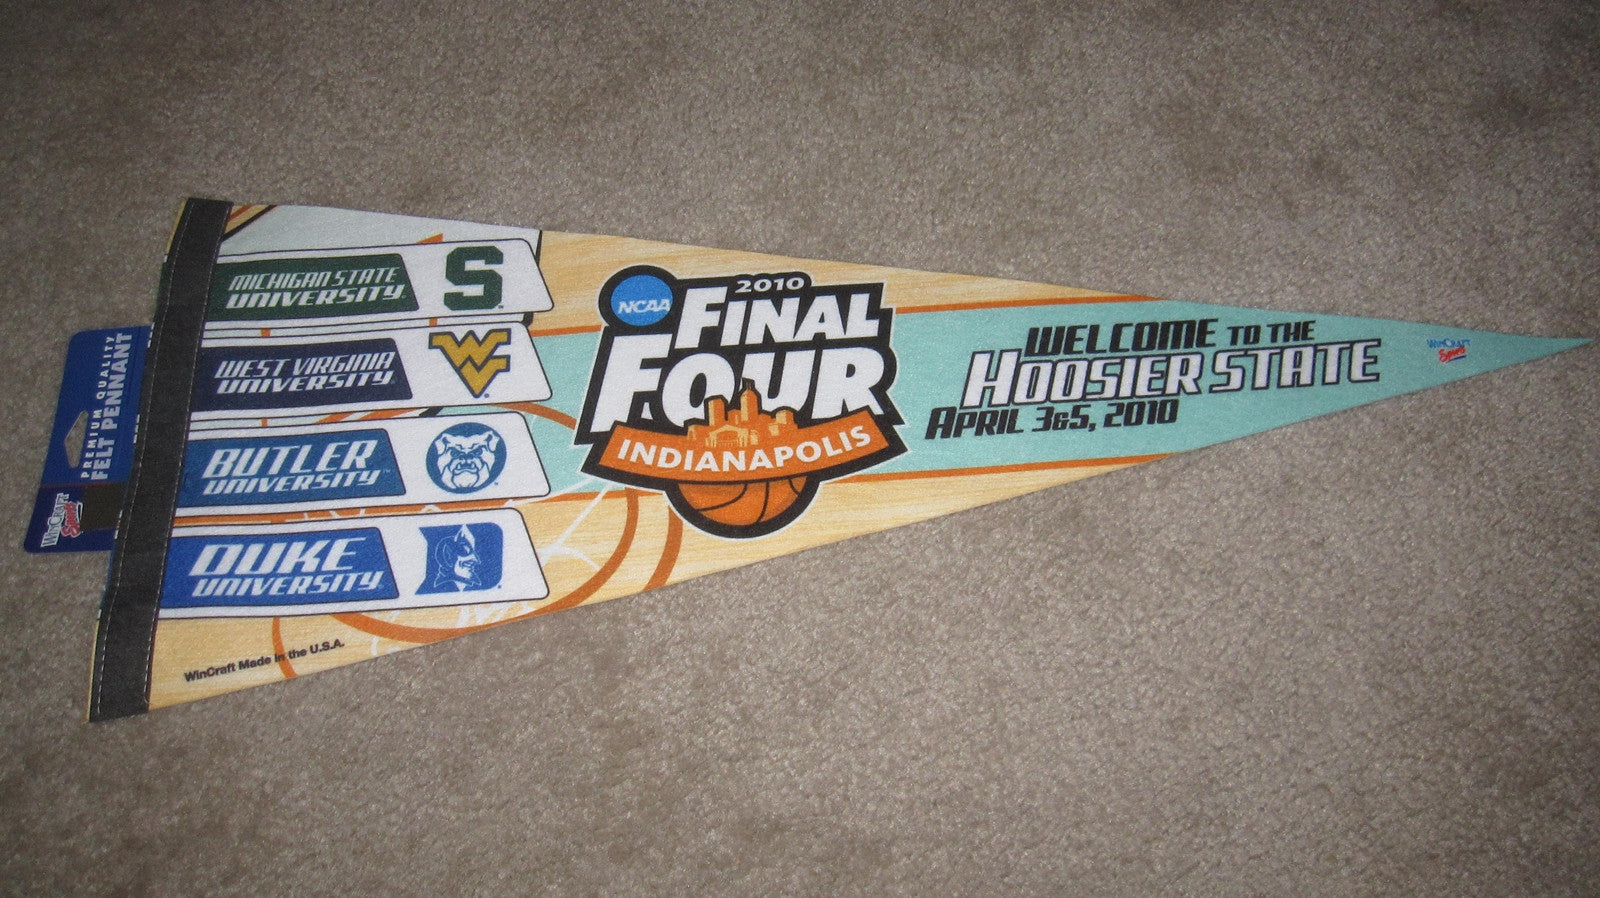 2010 NCAA Final Four Basketball Pennant, Butler, Duke, MIchigan St., West Virginia - Vintage Indy Sports